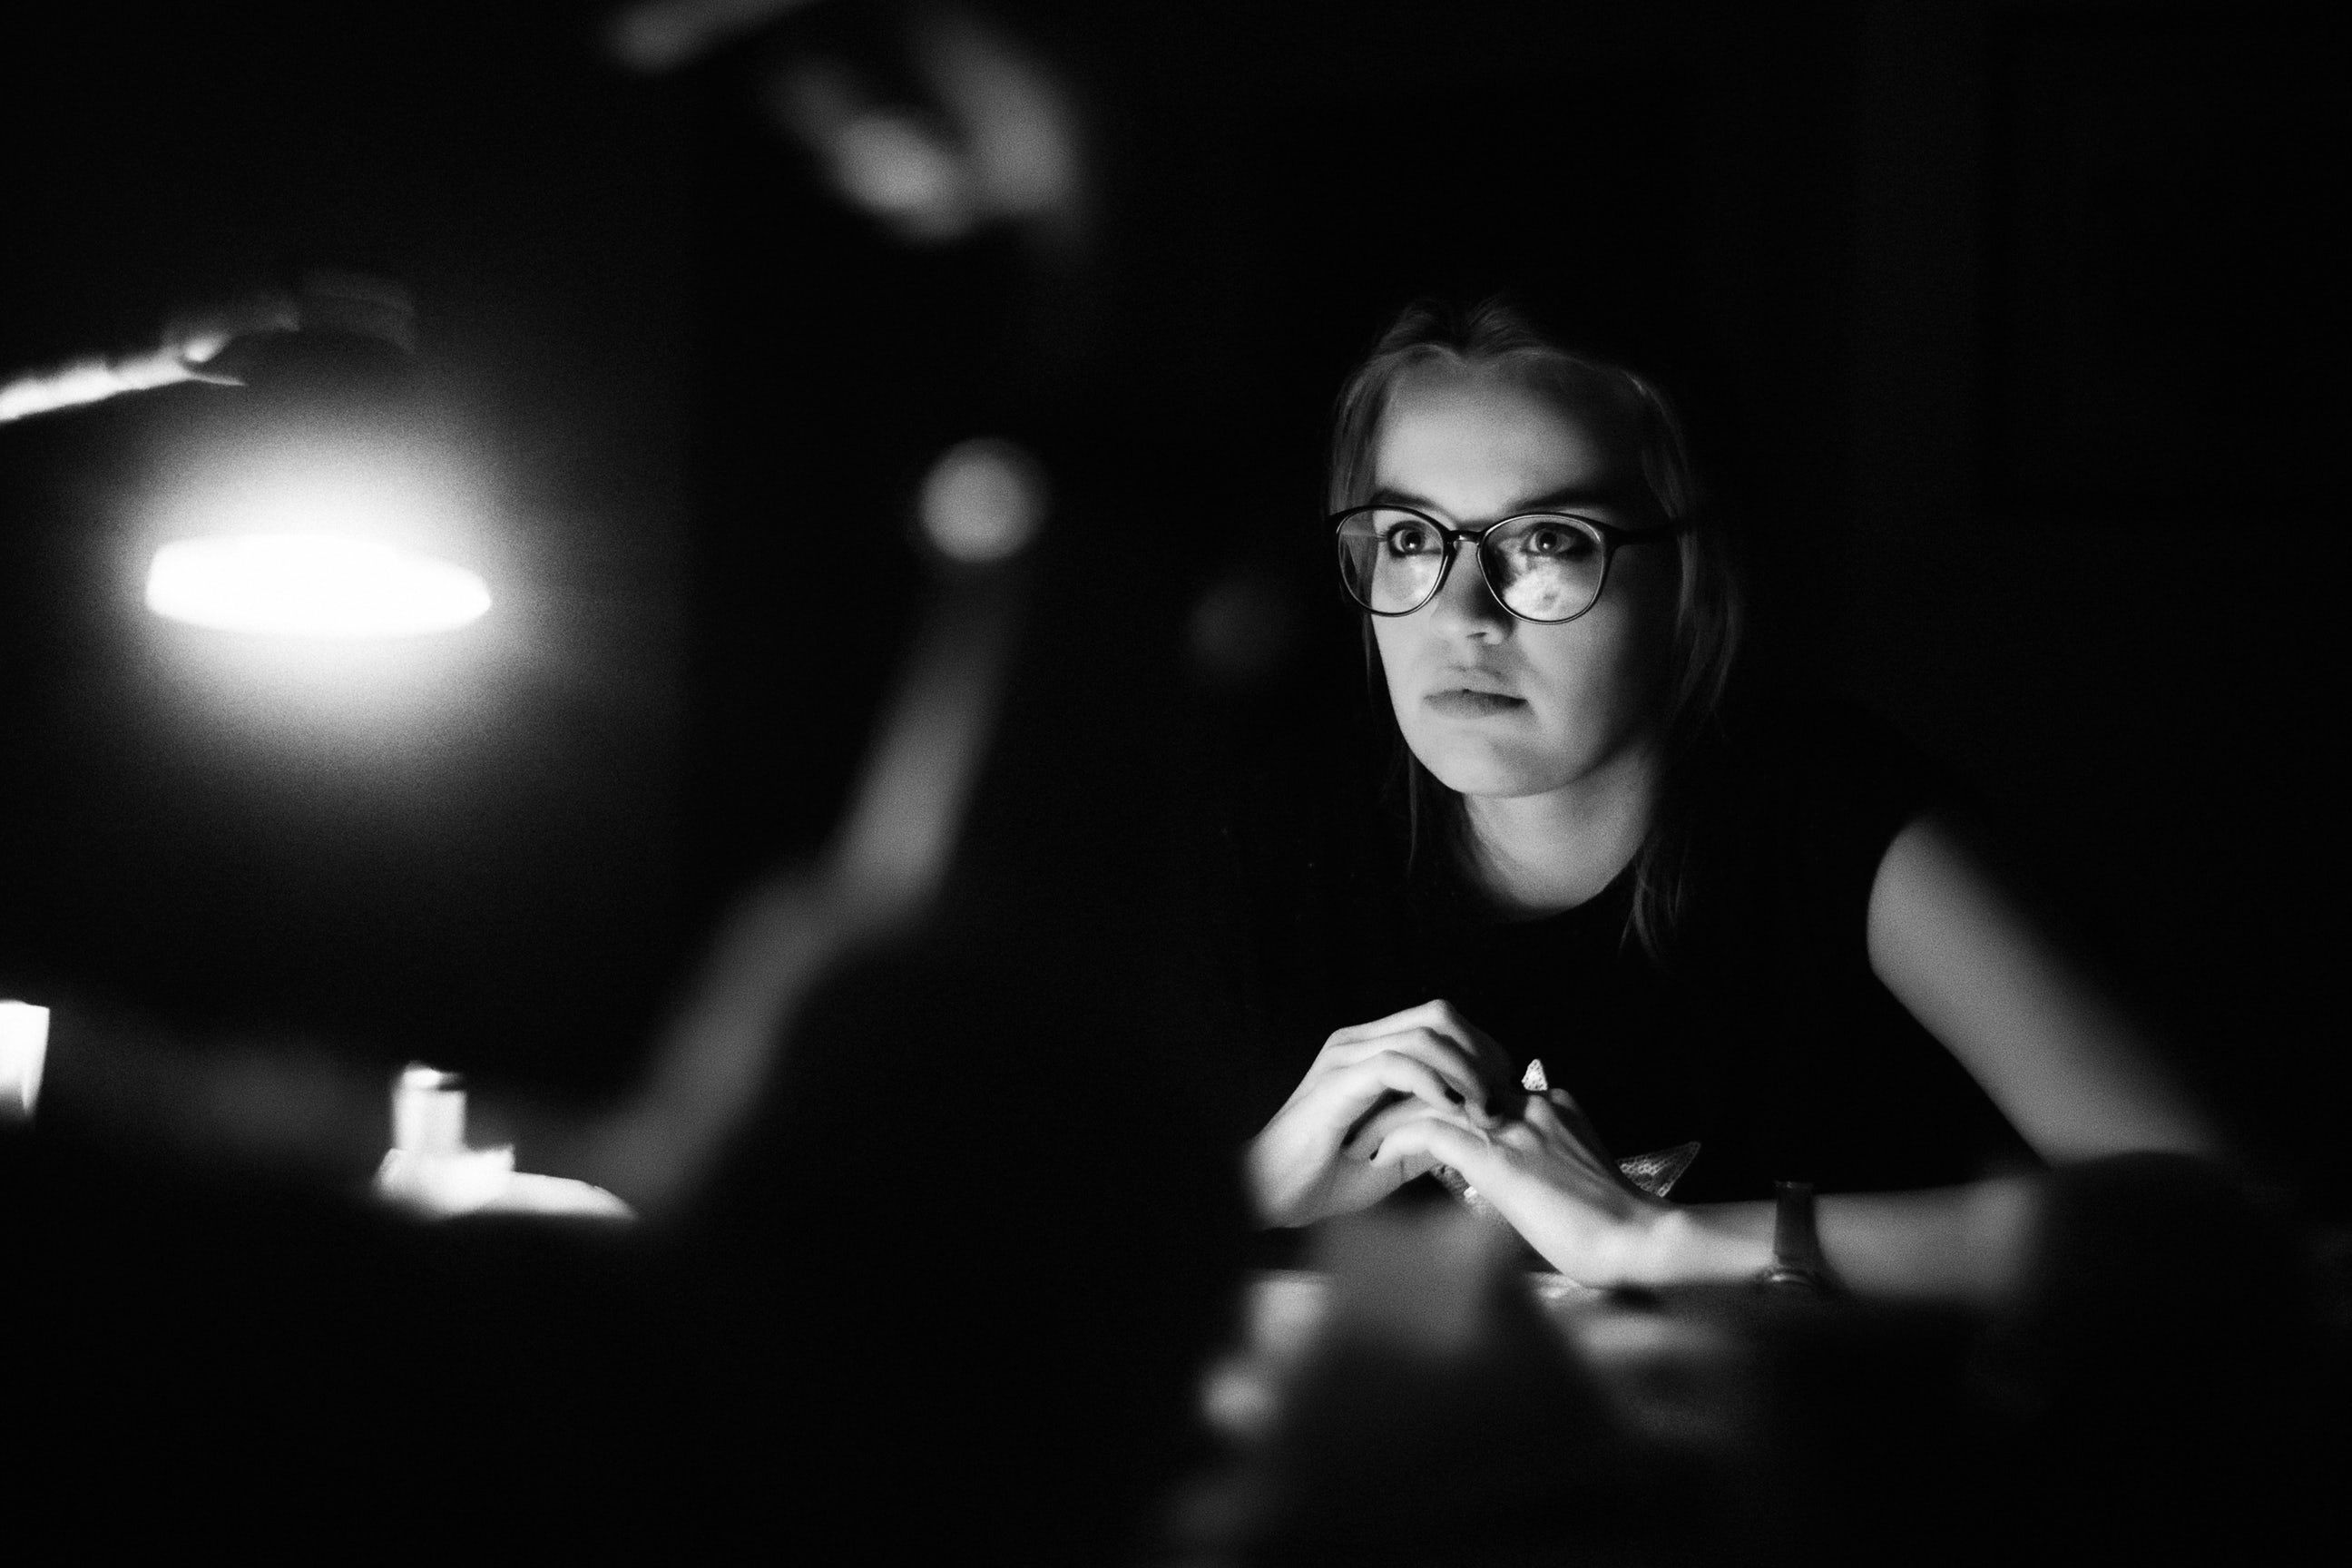 Young Woman In Glasses Concentrates In The Shadows